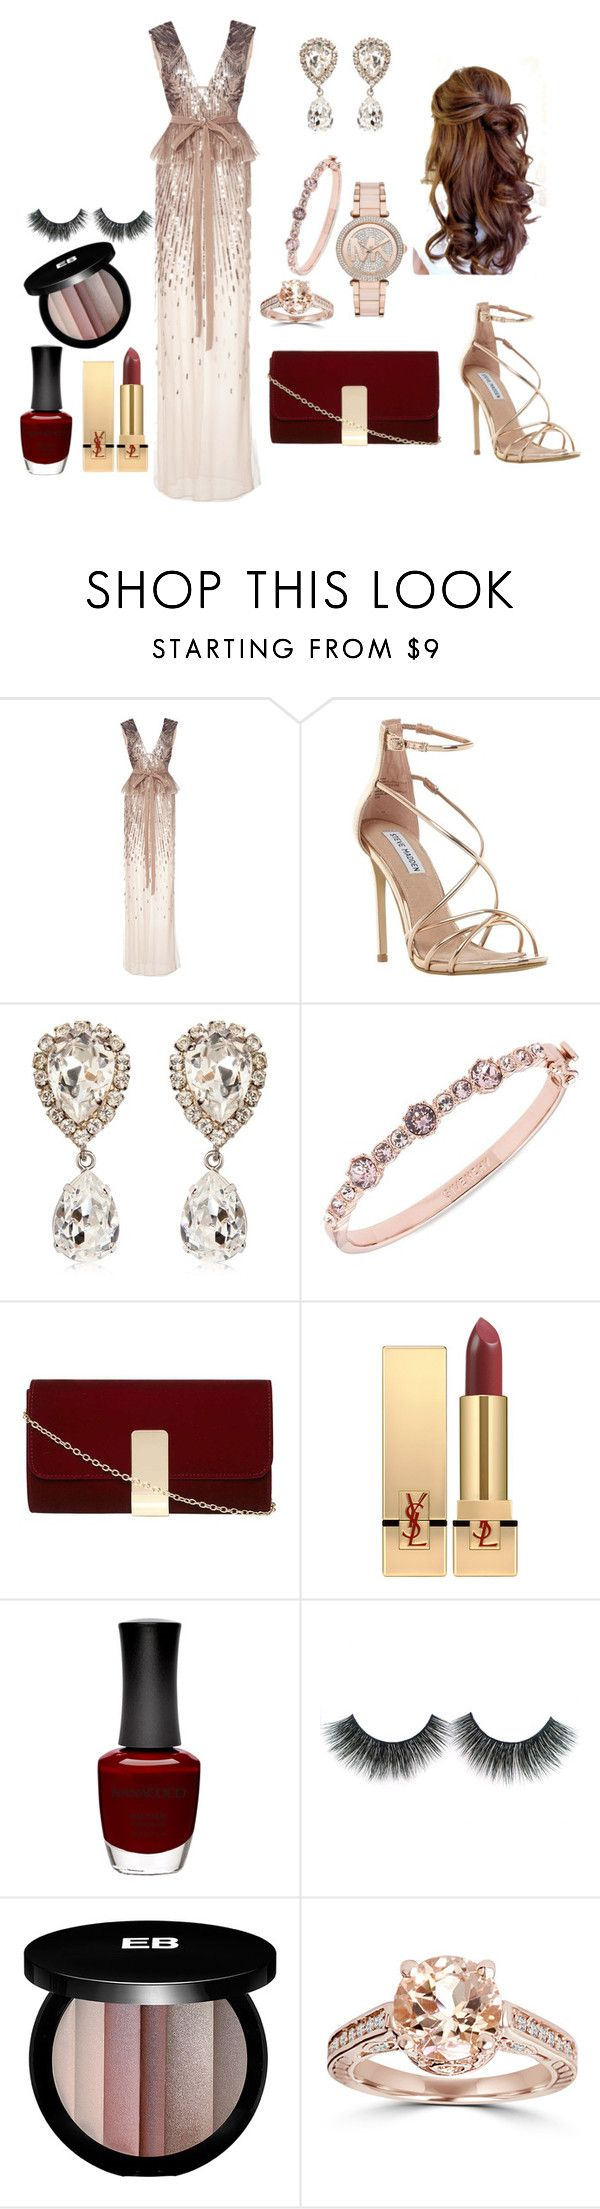 """""""Untitled #18"""" by hajar-111 on Polyvore featuring Monique Lhuillier, Steve Madden, Dolce&Gabbana, Givenchy, Dorothy Perkins, Yves Saint Laurent, Nanacoco, Edward Bess, Bliss Diamond and Michael Kors"""